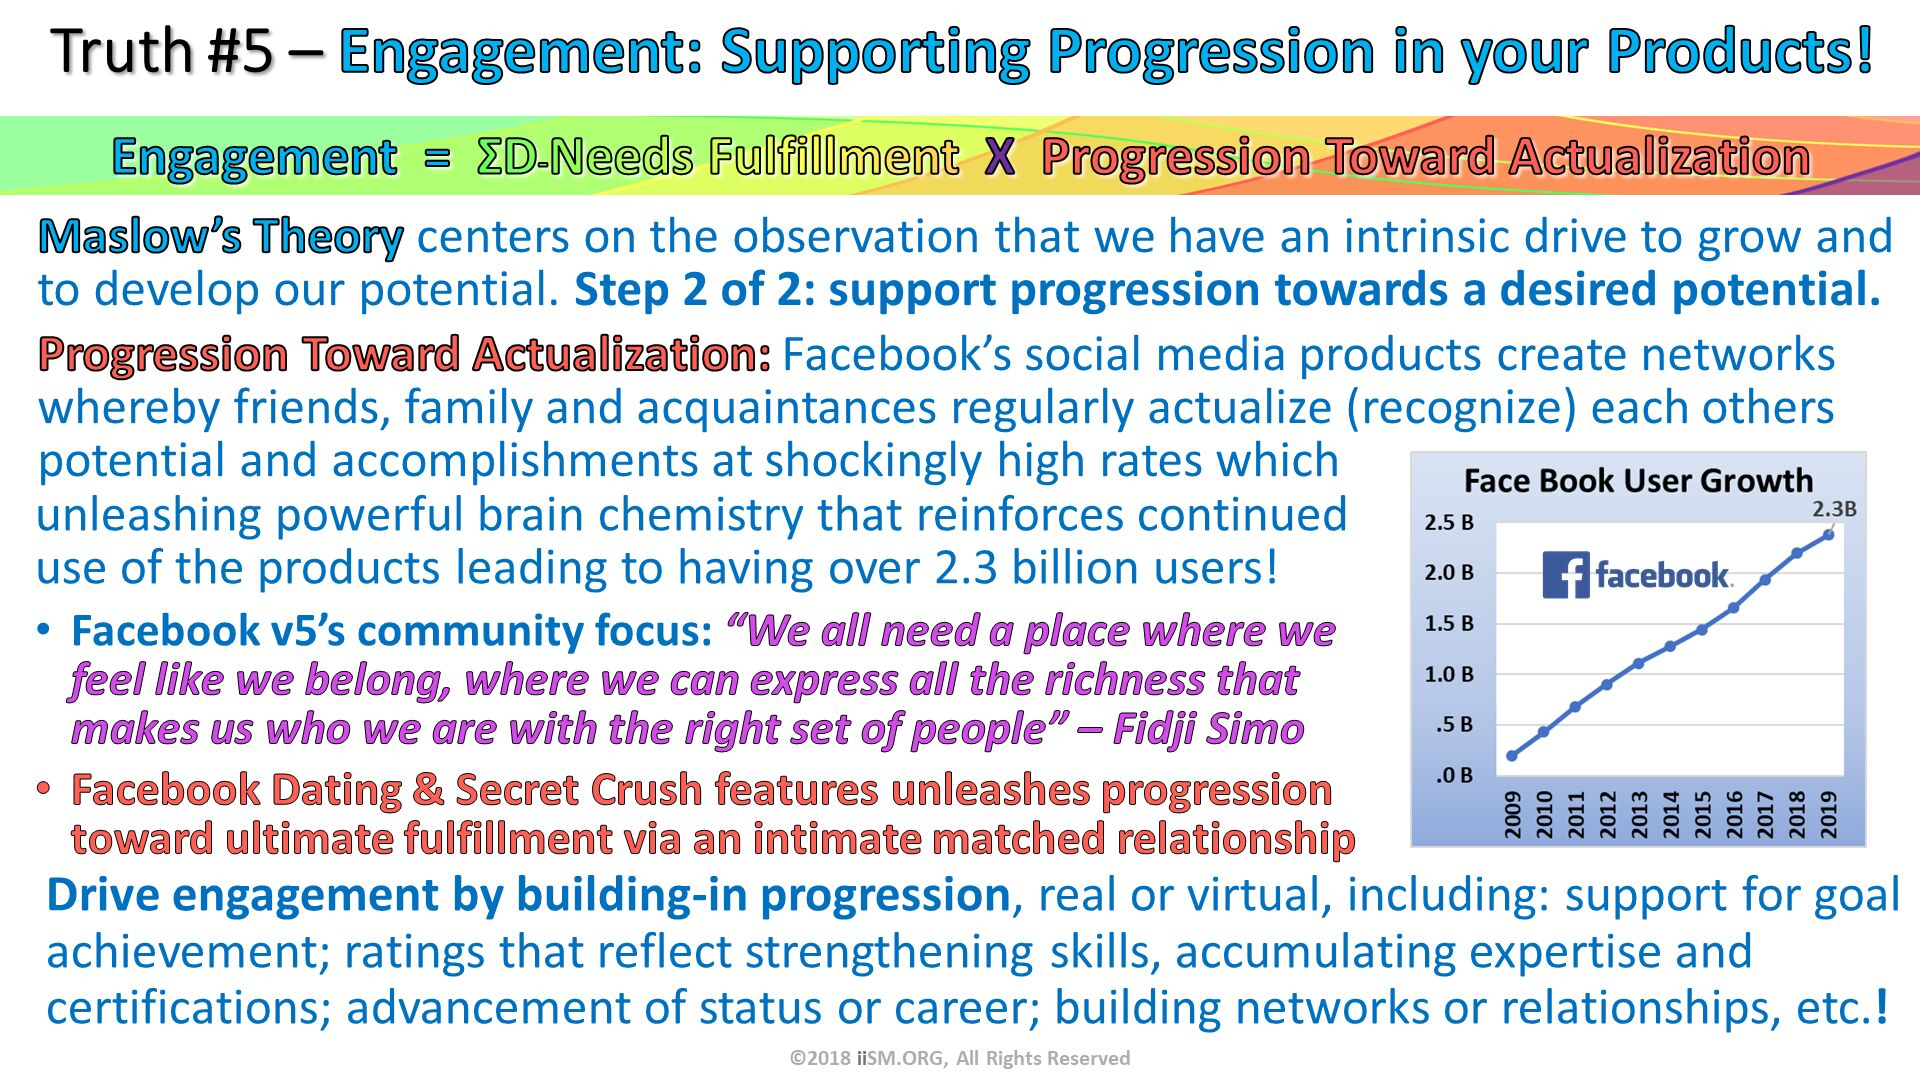 "©2018 iiSM.ORG, All Rights Reserved.  . Maslow's Theory centers on the observation that we have an intrinsic drive to grow and to develop our potential. Step 2 of 2: support progression towards a desired potential. Progression Toward Actualization: Facebook's social media products create networks whereby friends, family and acquaintances regularly actualize (recognize) each others potential and accomplishments at shockingly high rates which . unleashing powerful brain chemistry that reinforces continued use of the products leading to having over 2.3 billion users! Facebook v5's community focus: ""We all need a place where we feel like we belong, where we can express all the richness that makes us who we are with the right set of people"" – Fidji Simo Facebook Dating & Secret Crush features unleashes progression toward ultimate fulfillment via an intimate matched relationship. Drive engagement by building-in progression, real or virtual, including: support for goal achievement; ratings that reflect strengthening skills, accumulating expertise and certifications; advancement of status or career; building networks or relationships, etc.!. Truth #5 – Engagement: Supporting Progression in your Products! . Engagement  =  ΣD-Needs Fulfillment  X  Progression Toward Actualization."